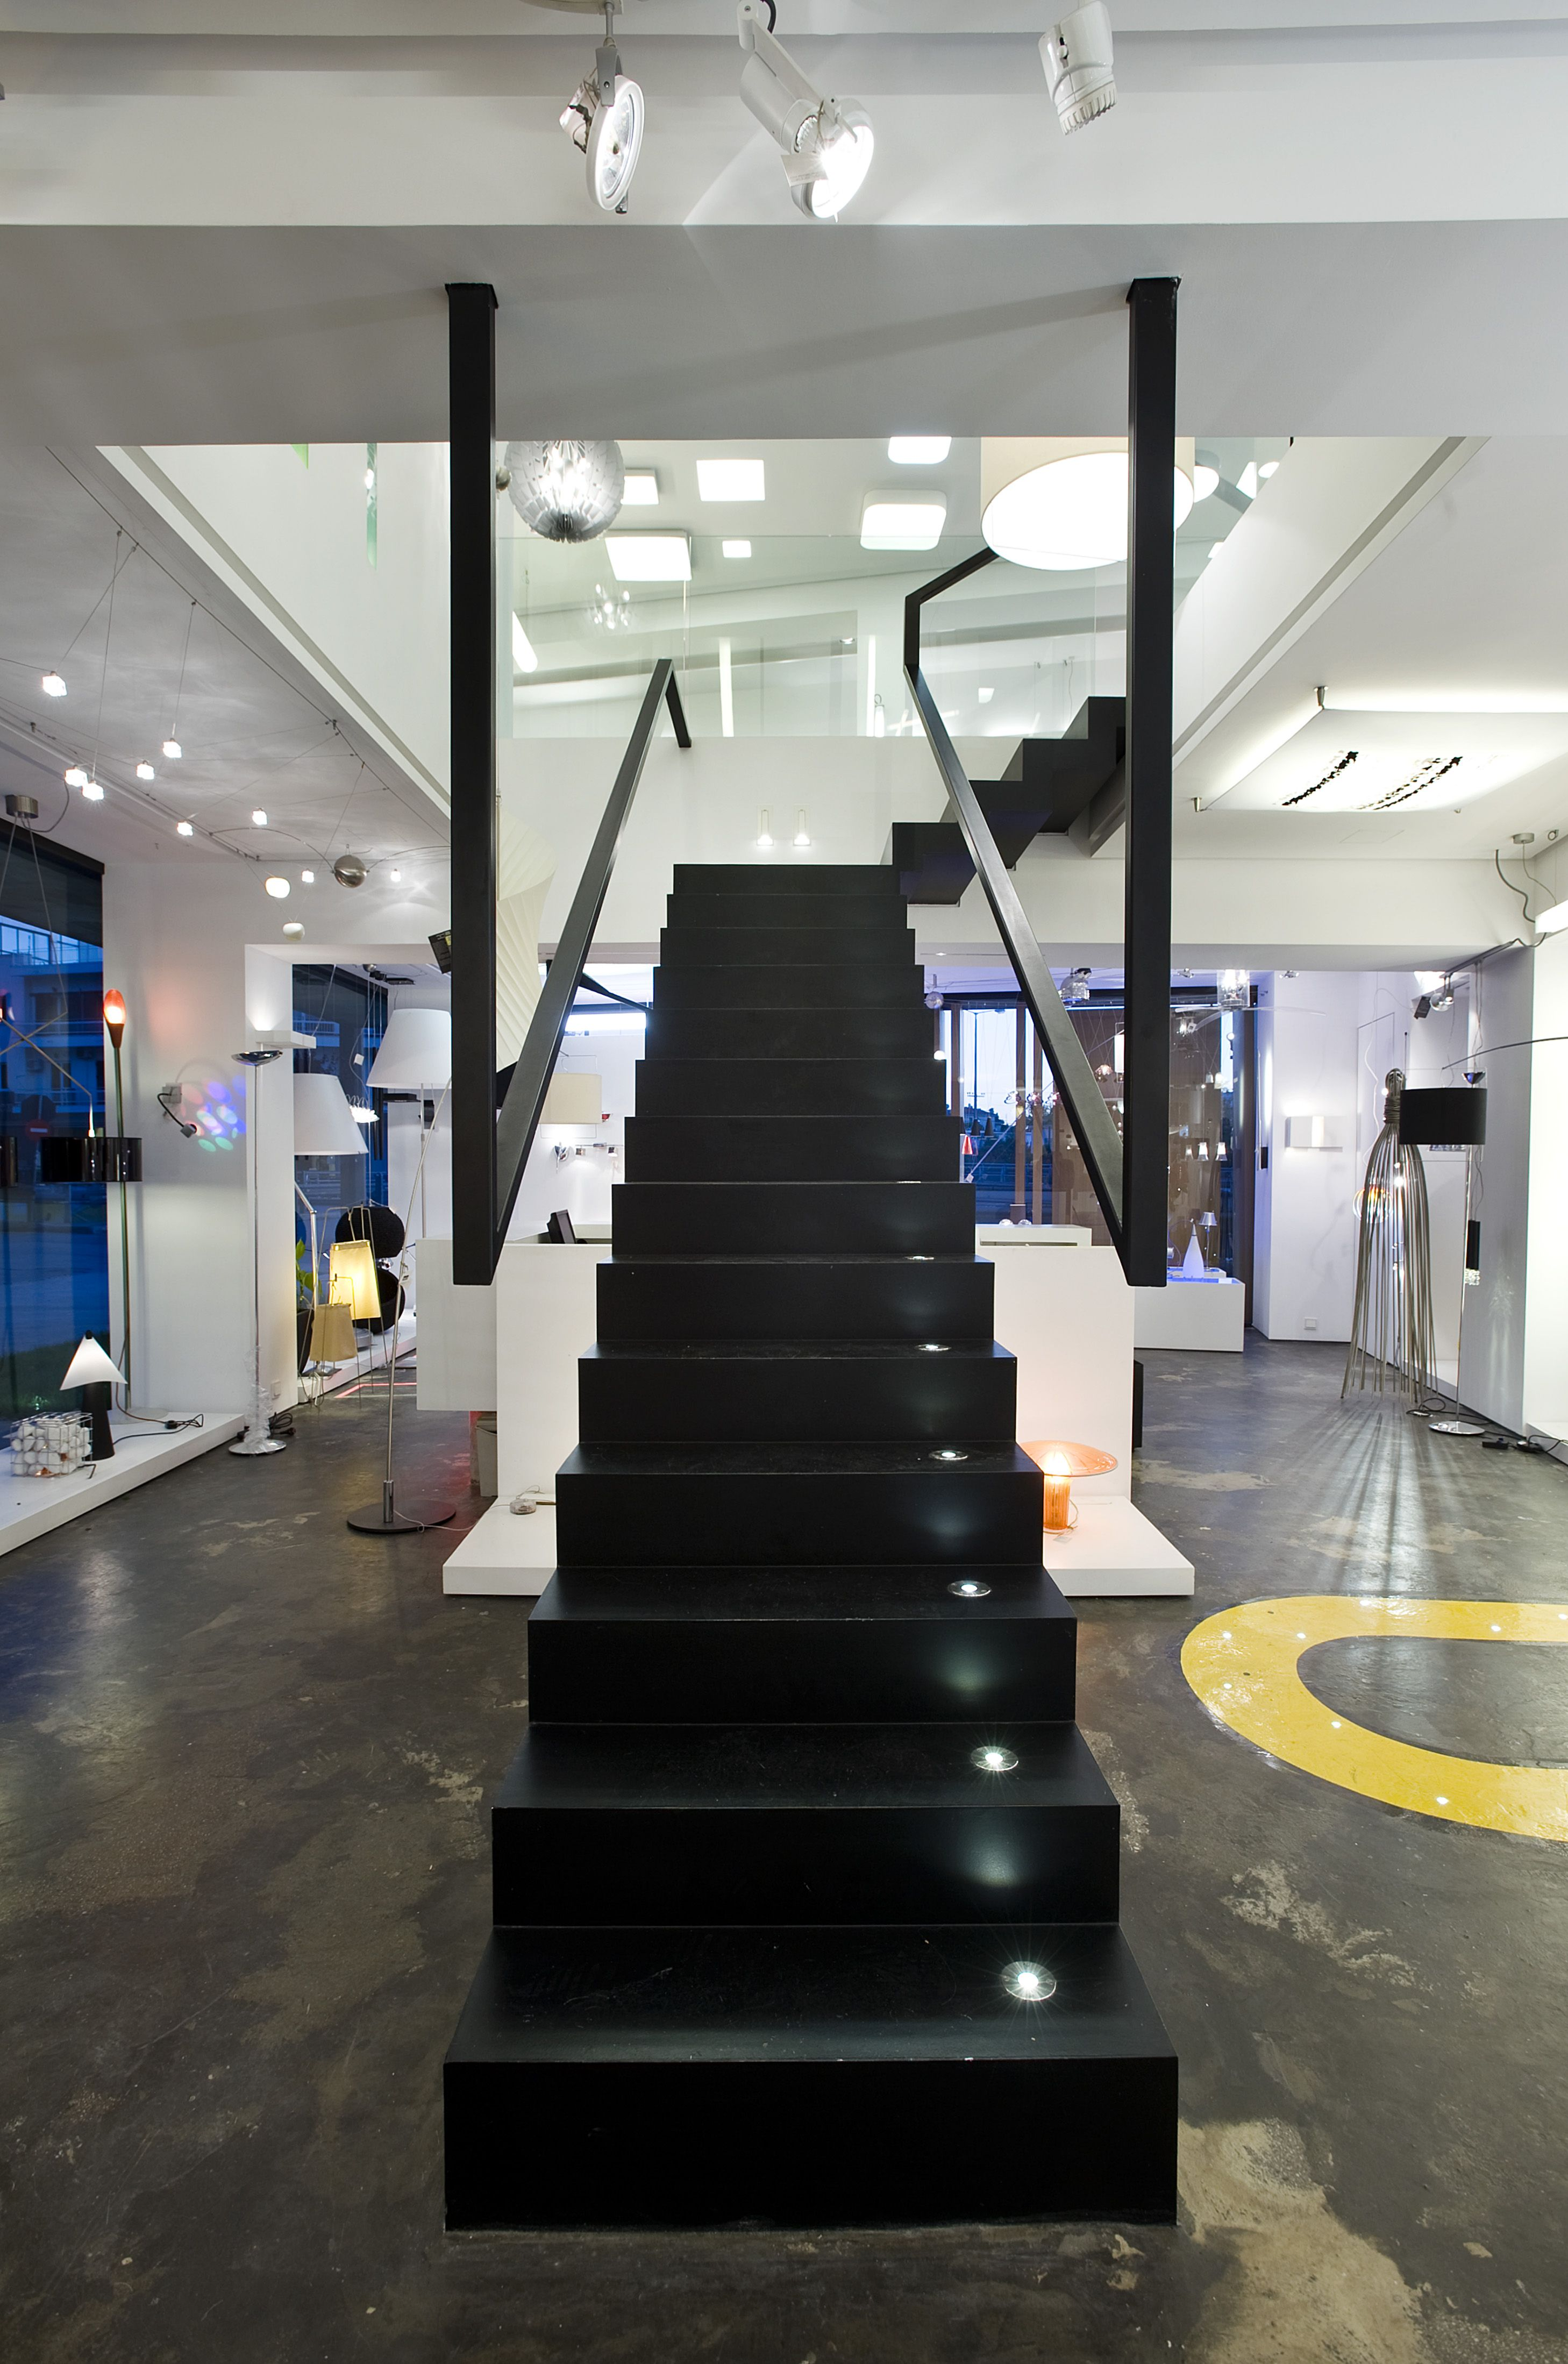 Halo architectural lighting showroom edje architects athens greece staircase